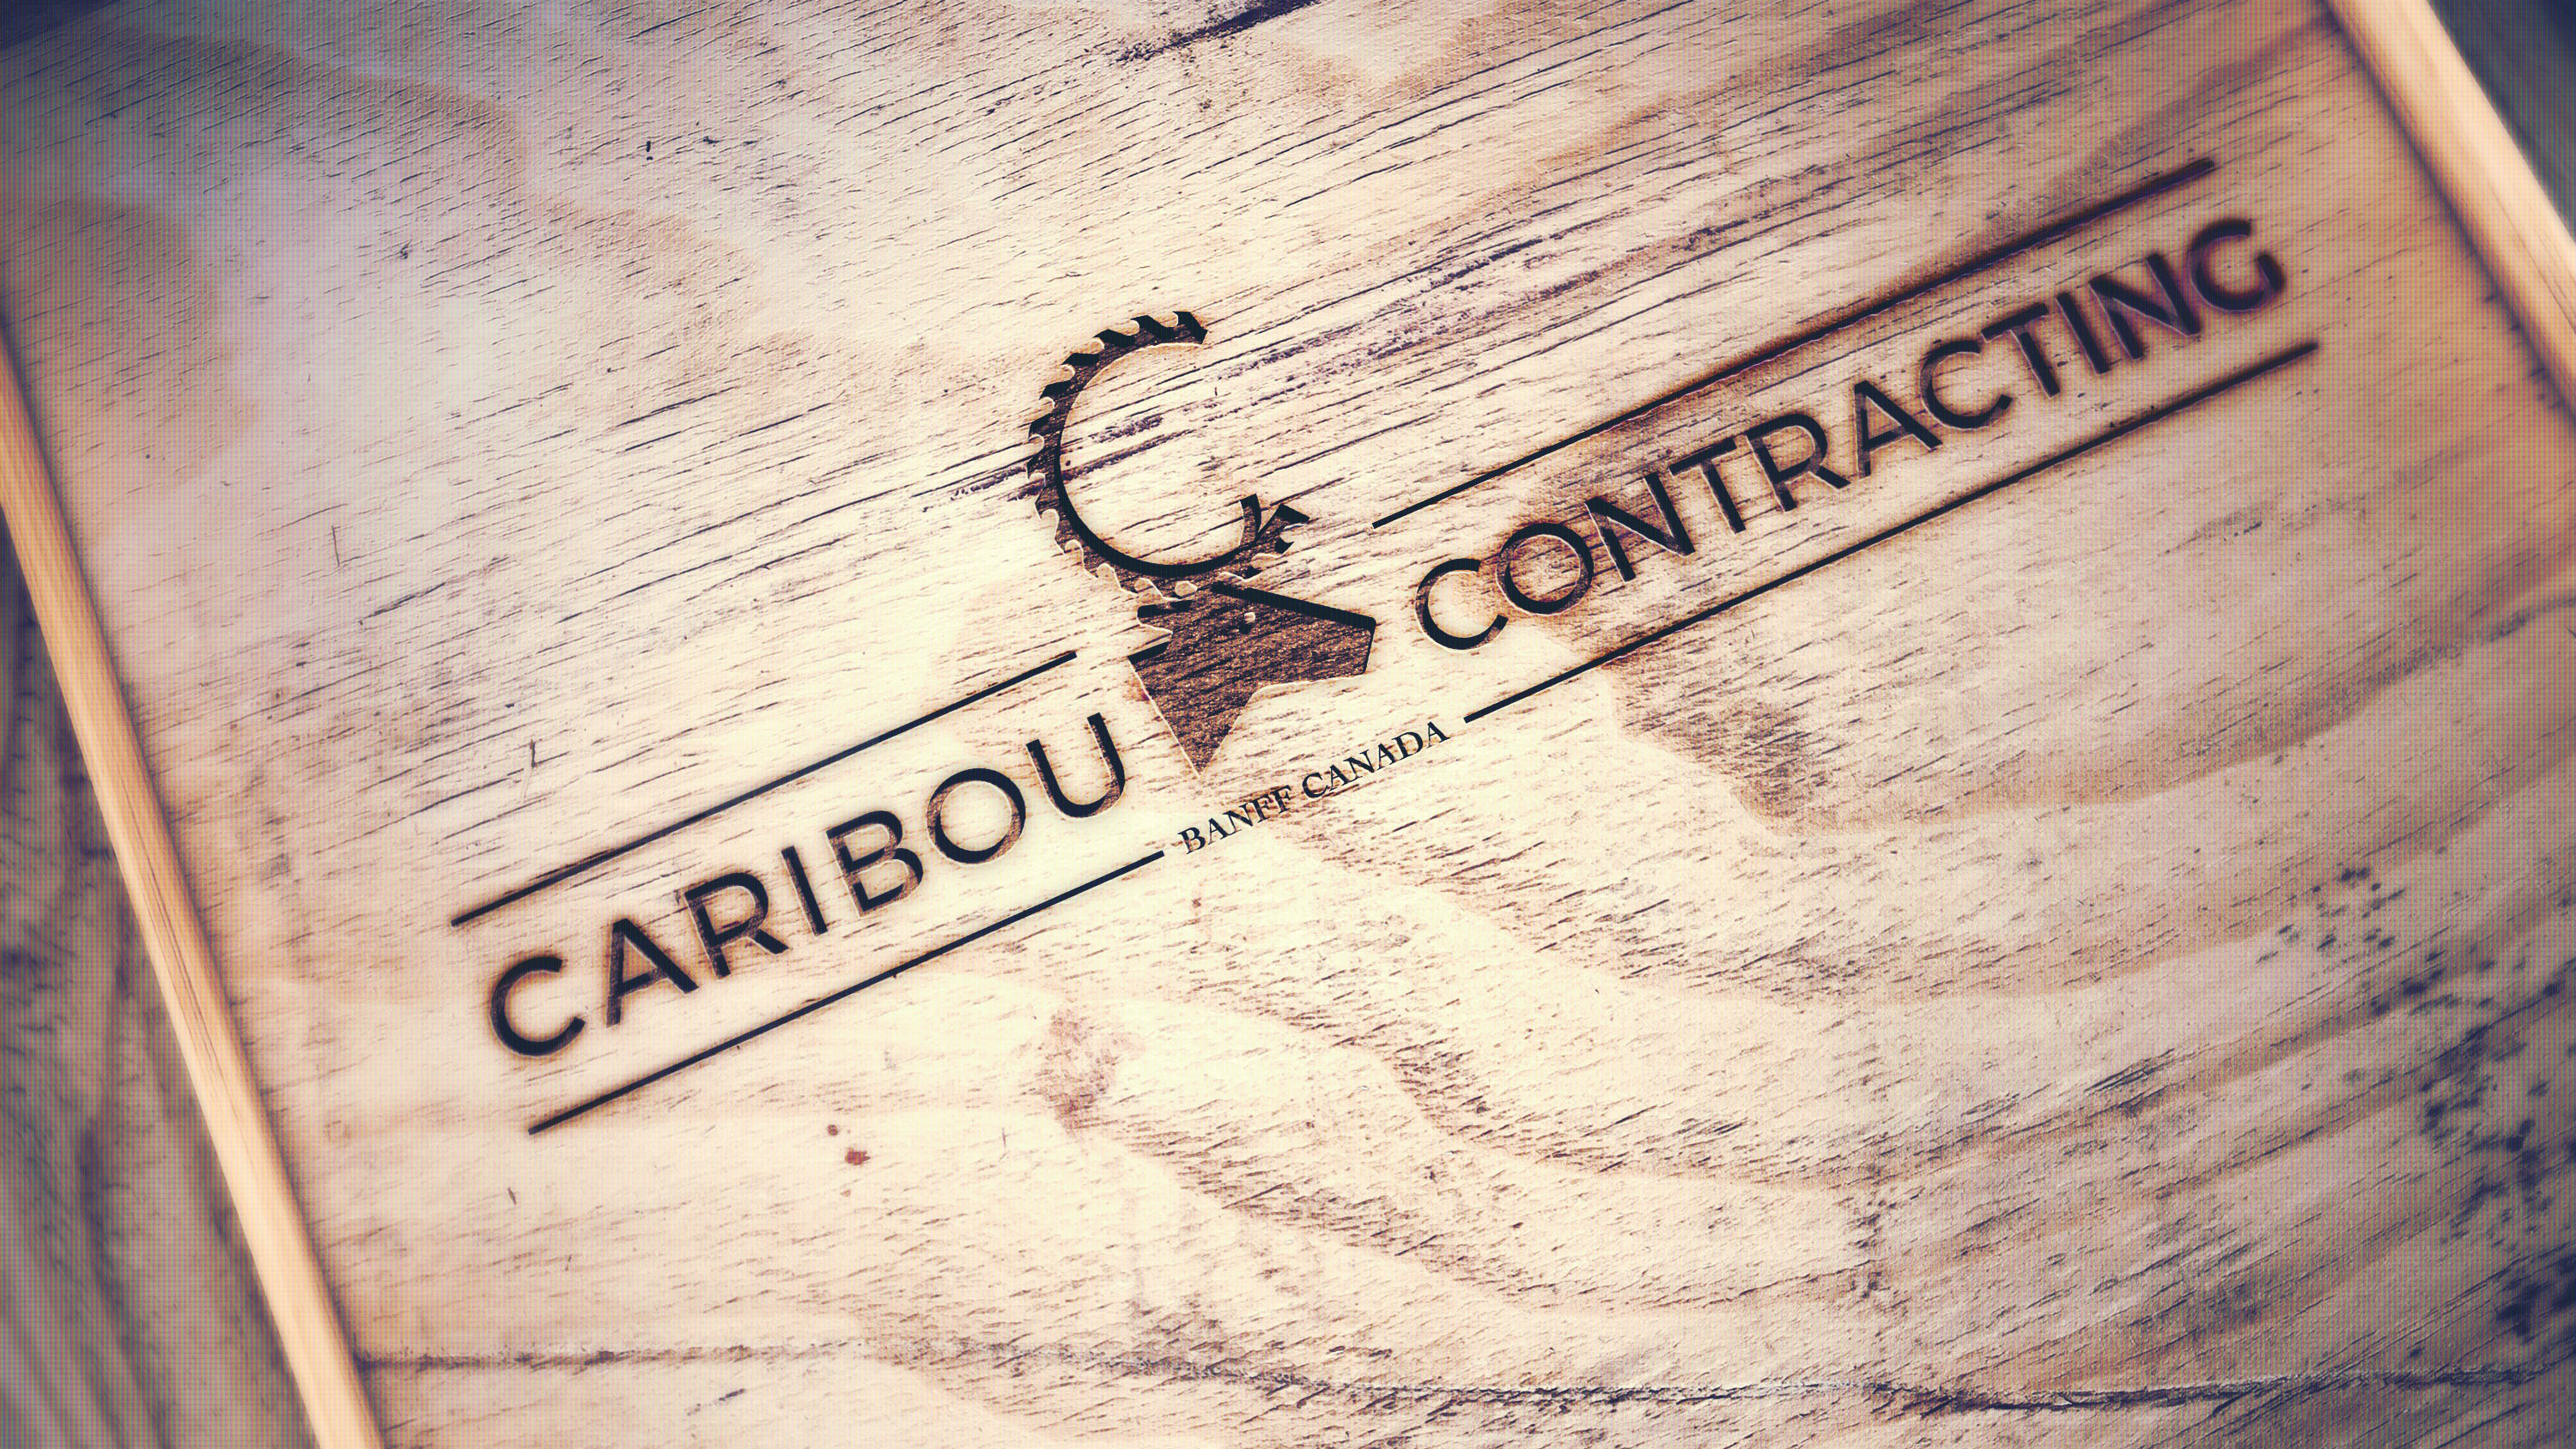 Caribou_Con_Engraved Wood Mock Up